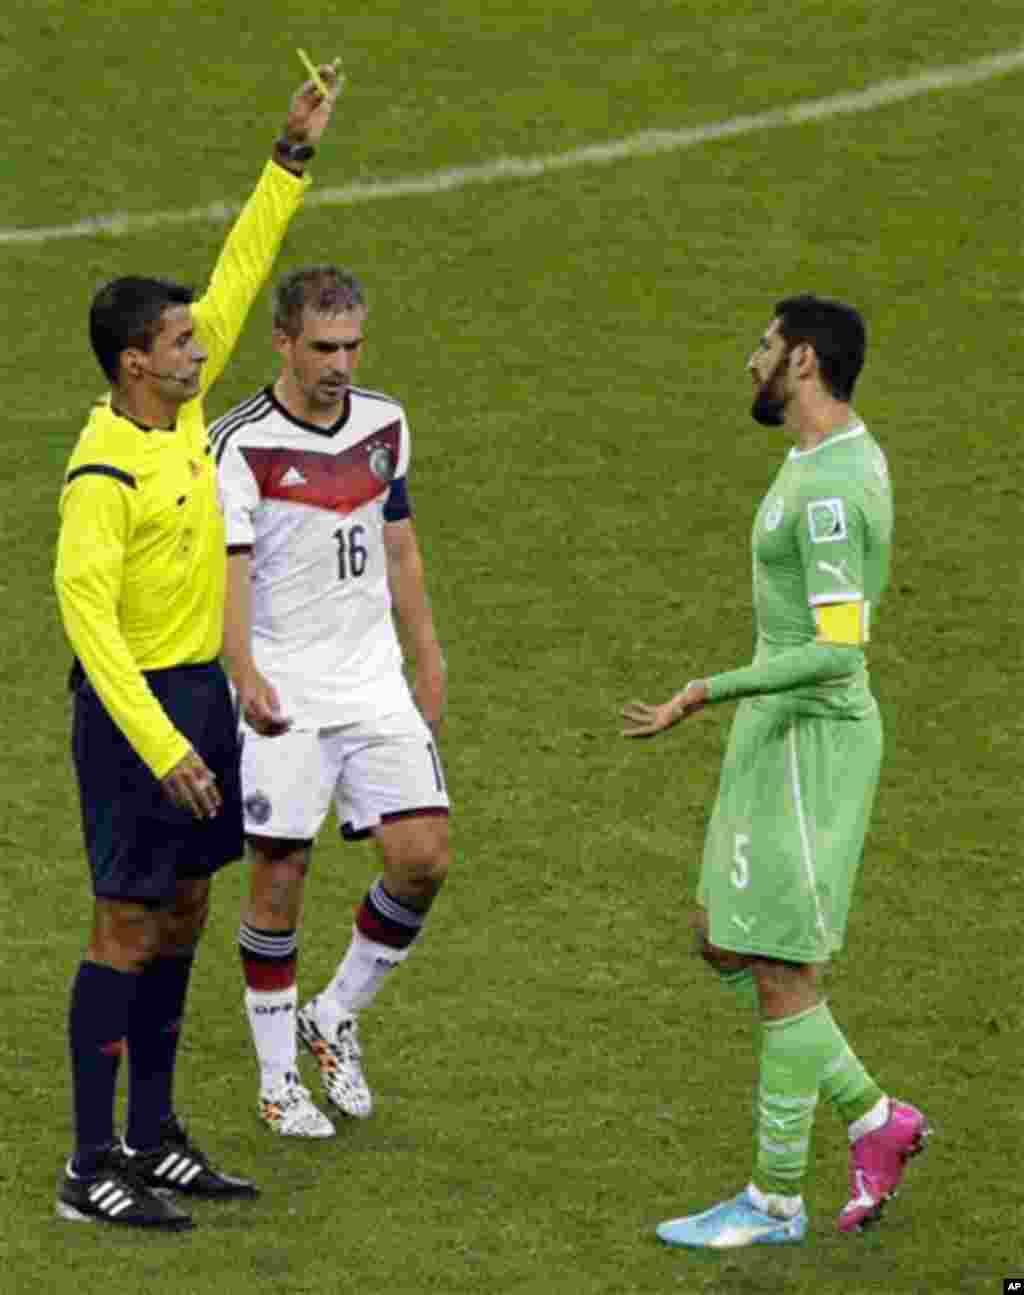 Algeria's Rafik Halliche, right, is booked by referee Sandro Ricci from Brazil during the World Cup round of 16 soccer match between Germany and Algeria at the Estadio Beira-Rio in Porto Alegre, Brazil, Monday, June 30, 2014. Between them is Germany's Phi